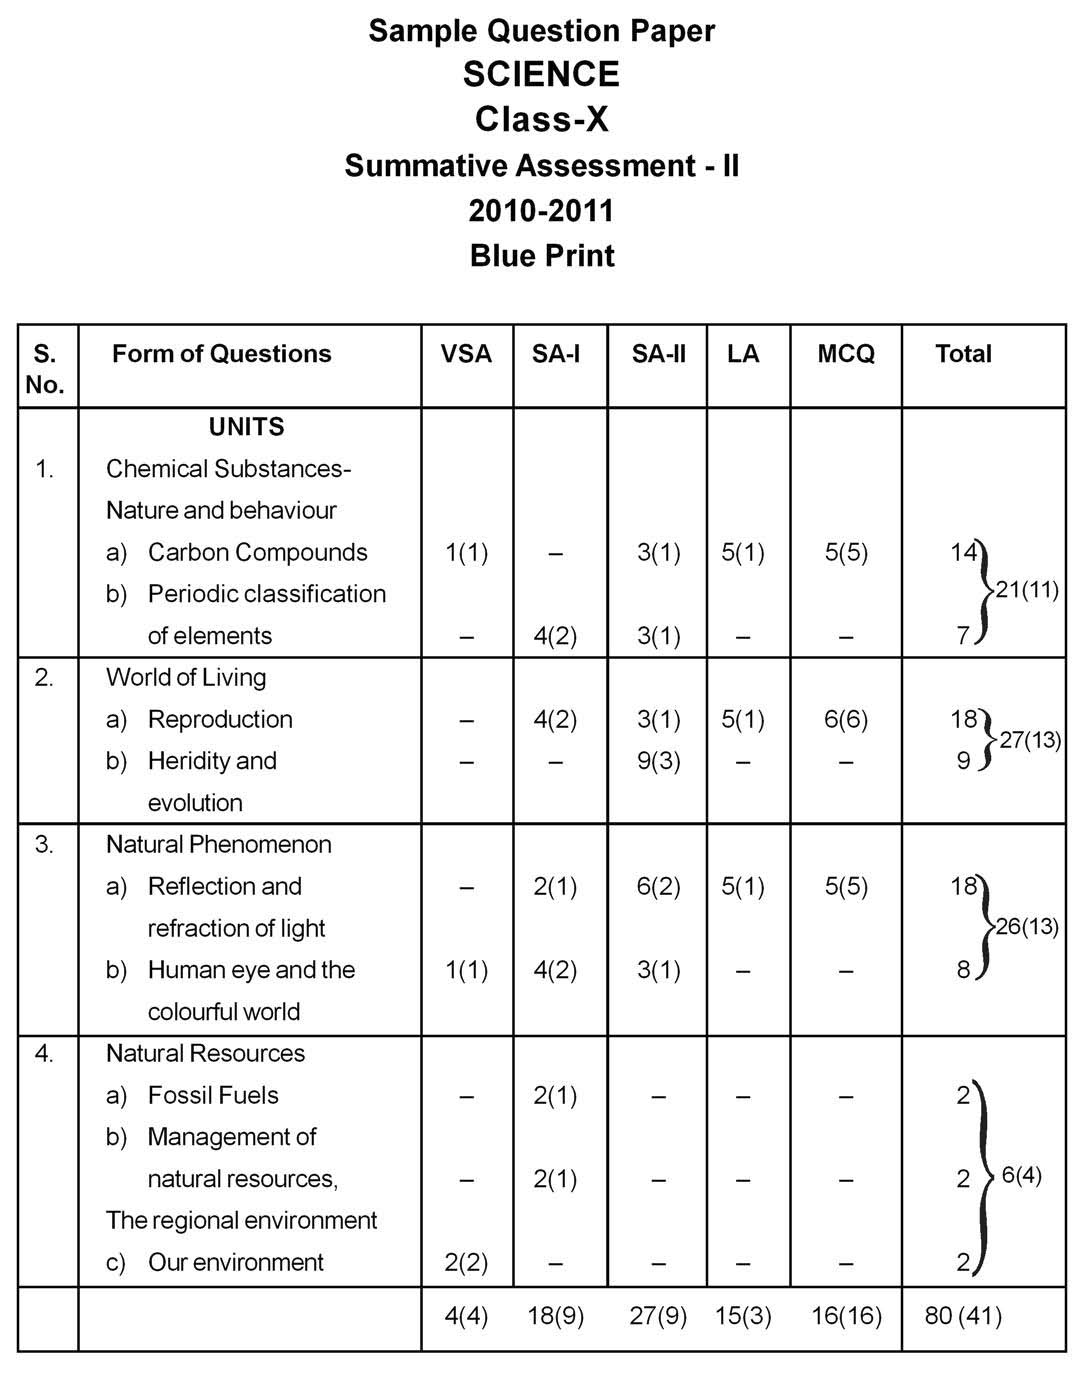 Cbse sample papers 2011 design and blue print science class x sa 2 2011 blue print 0f the sa 2 science paper for class x by cbse is given below click to enlarge malvernweather Gallery